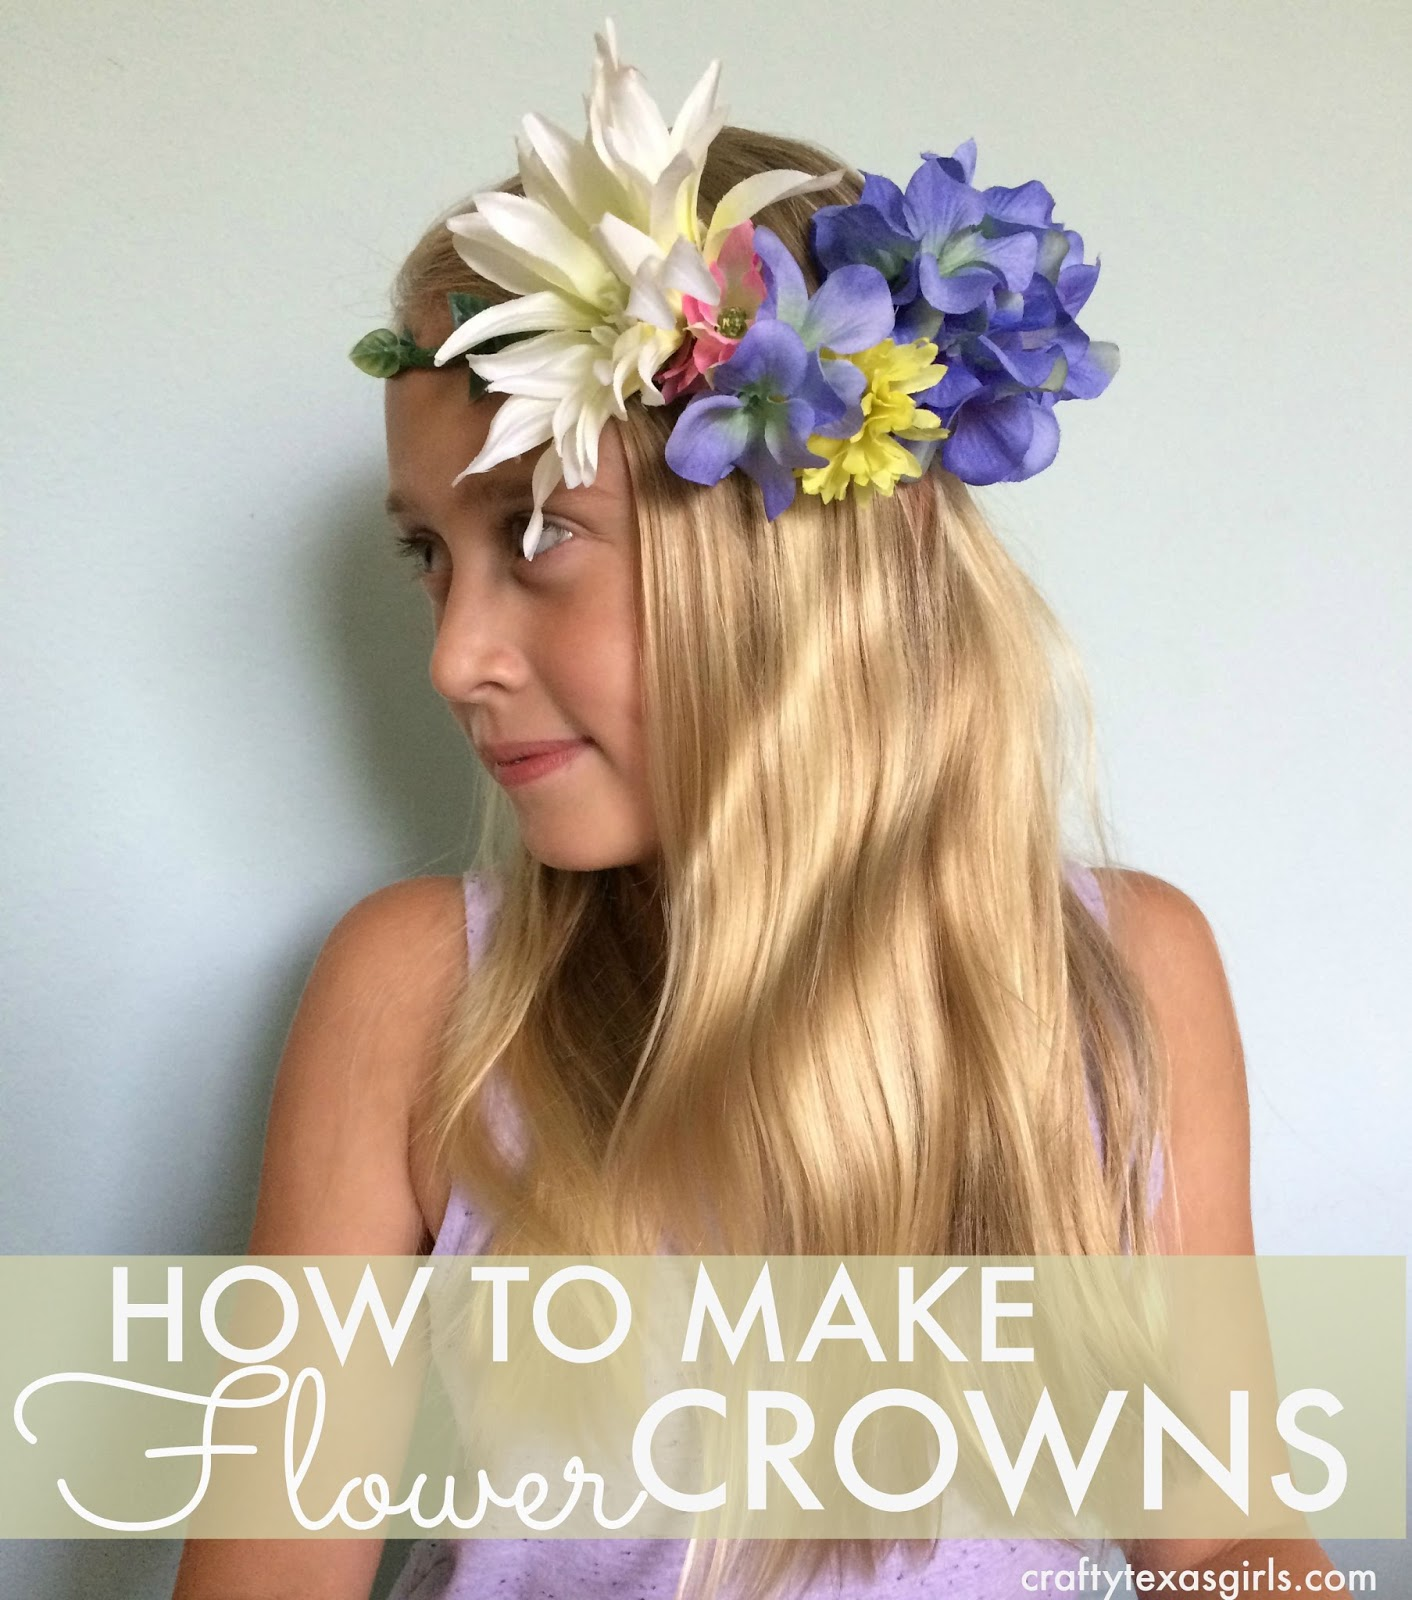 Crafty Texas Girls Diy How To Make Flower Crowns